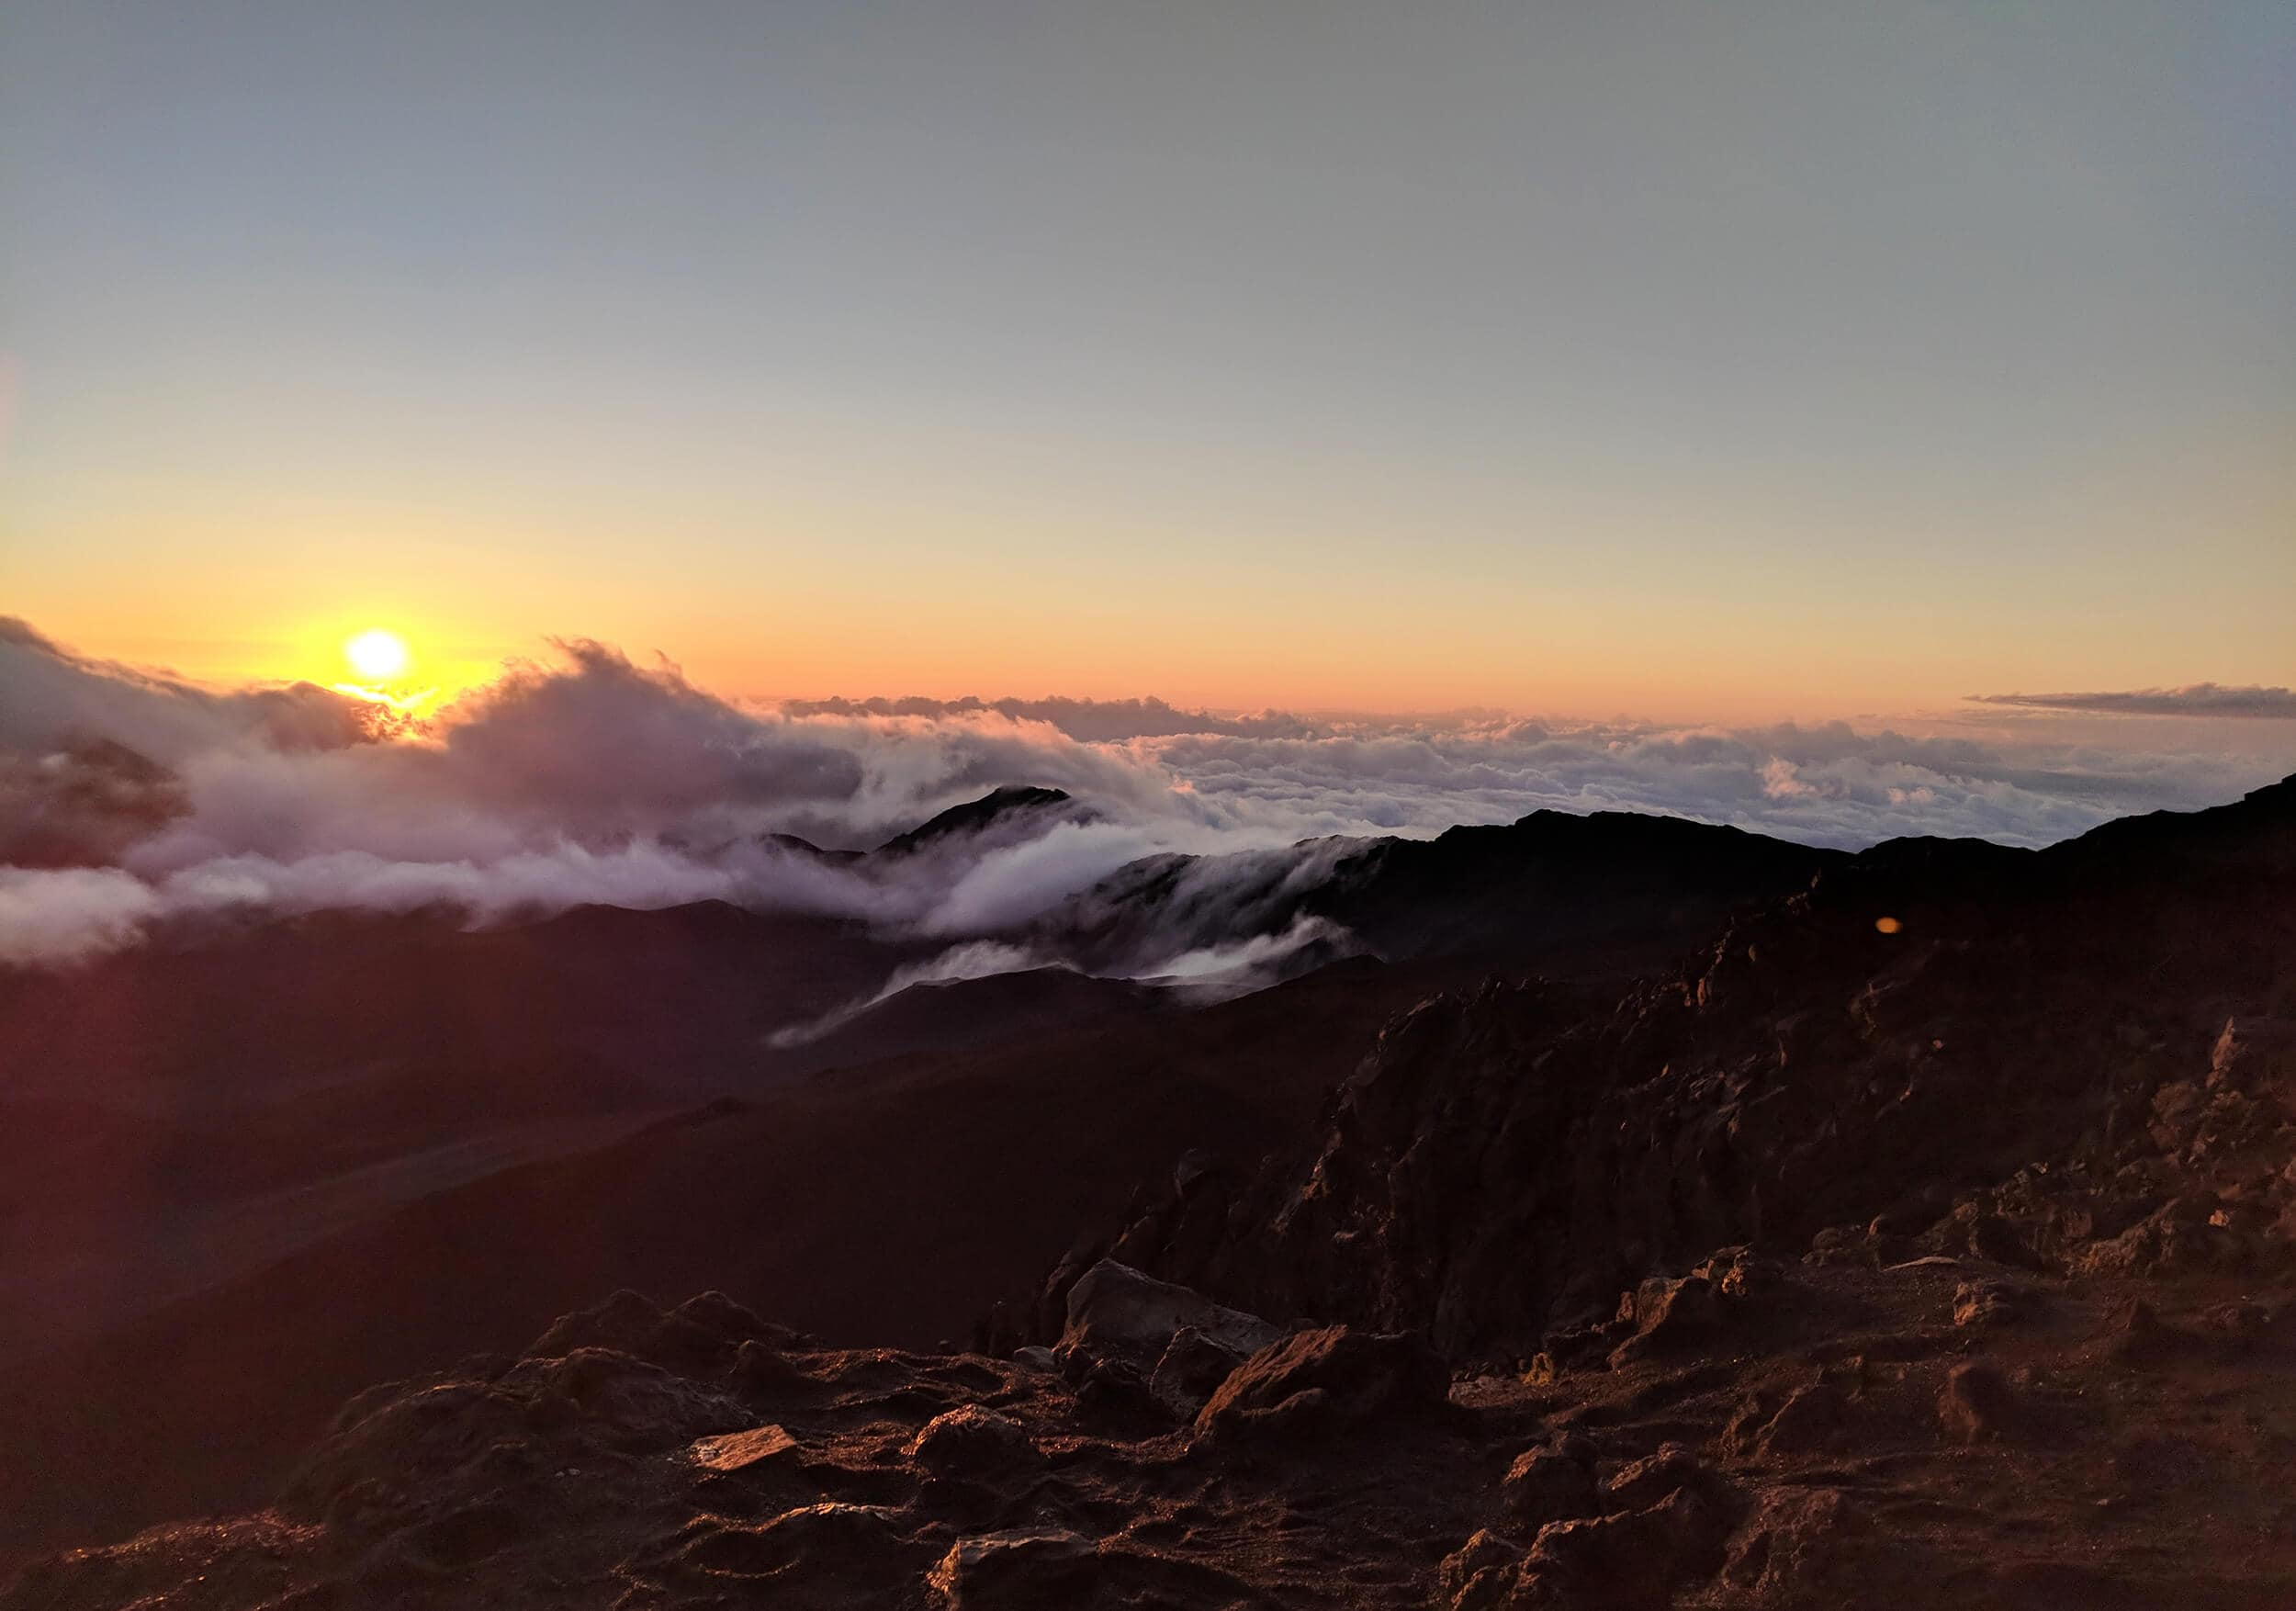 Travel bloggers reveal their favorite experiences in the world - Sunrise over Haleakala Volcano on Maui in Hawaii